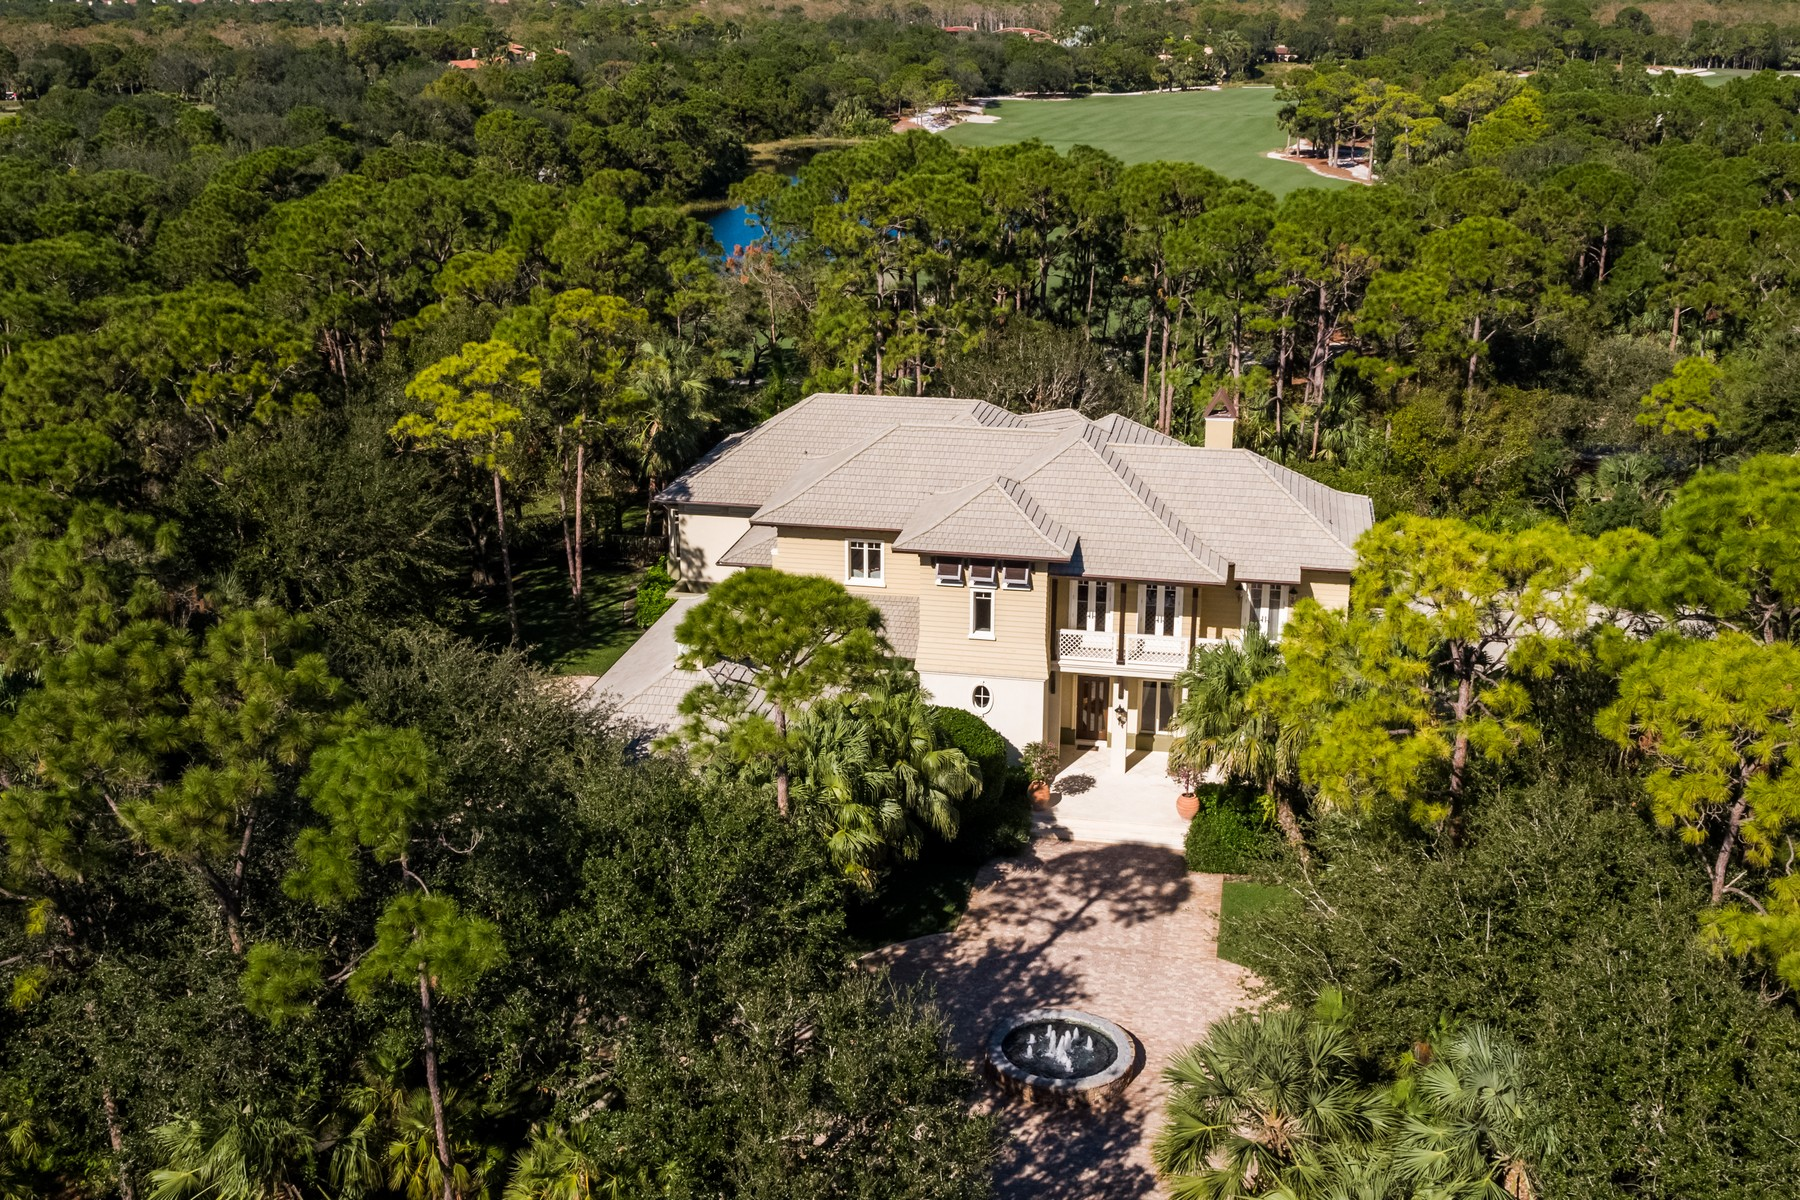 Single Family Home for Sale at 110 Bear's Club Drive at The Bear's Club The Bear's Club, Jupiter, Florida, 33477 United States